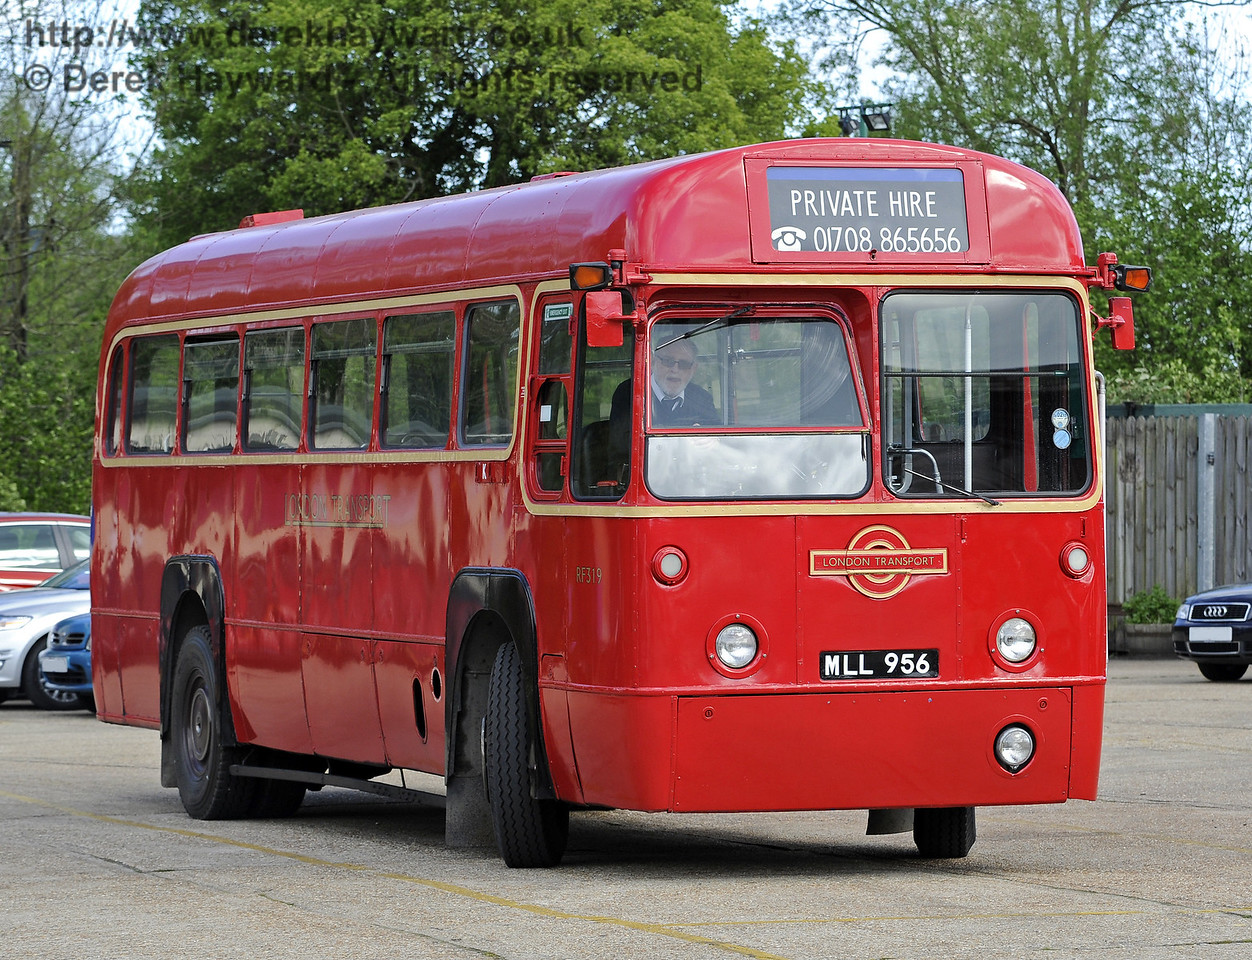 RF319 was visiting on private hire. Southern at War, Sheffield Park, 11.05.2014  9269